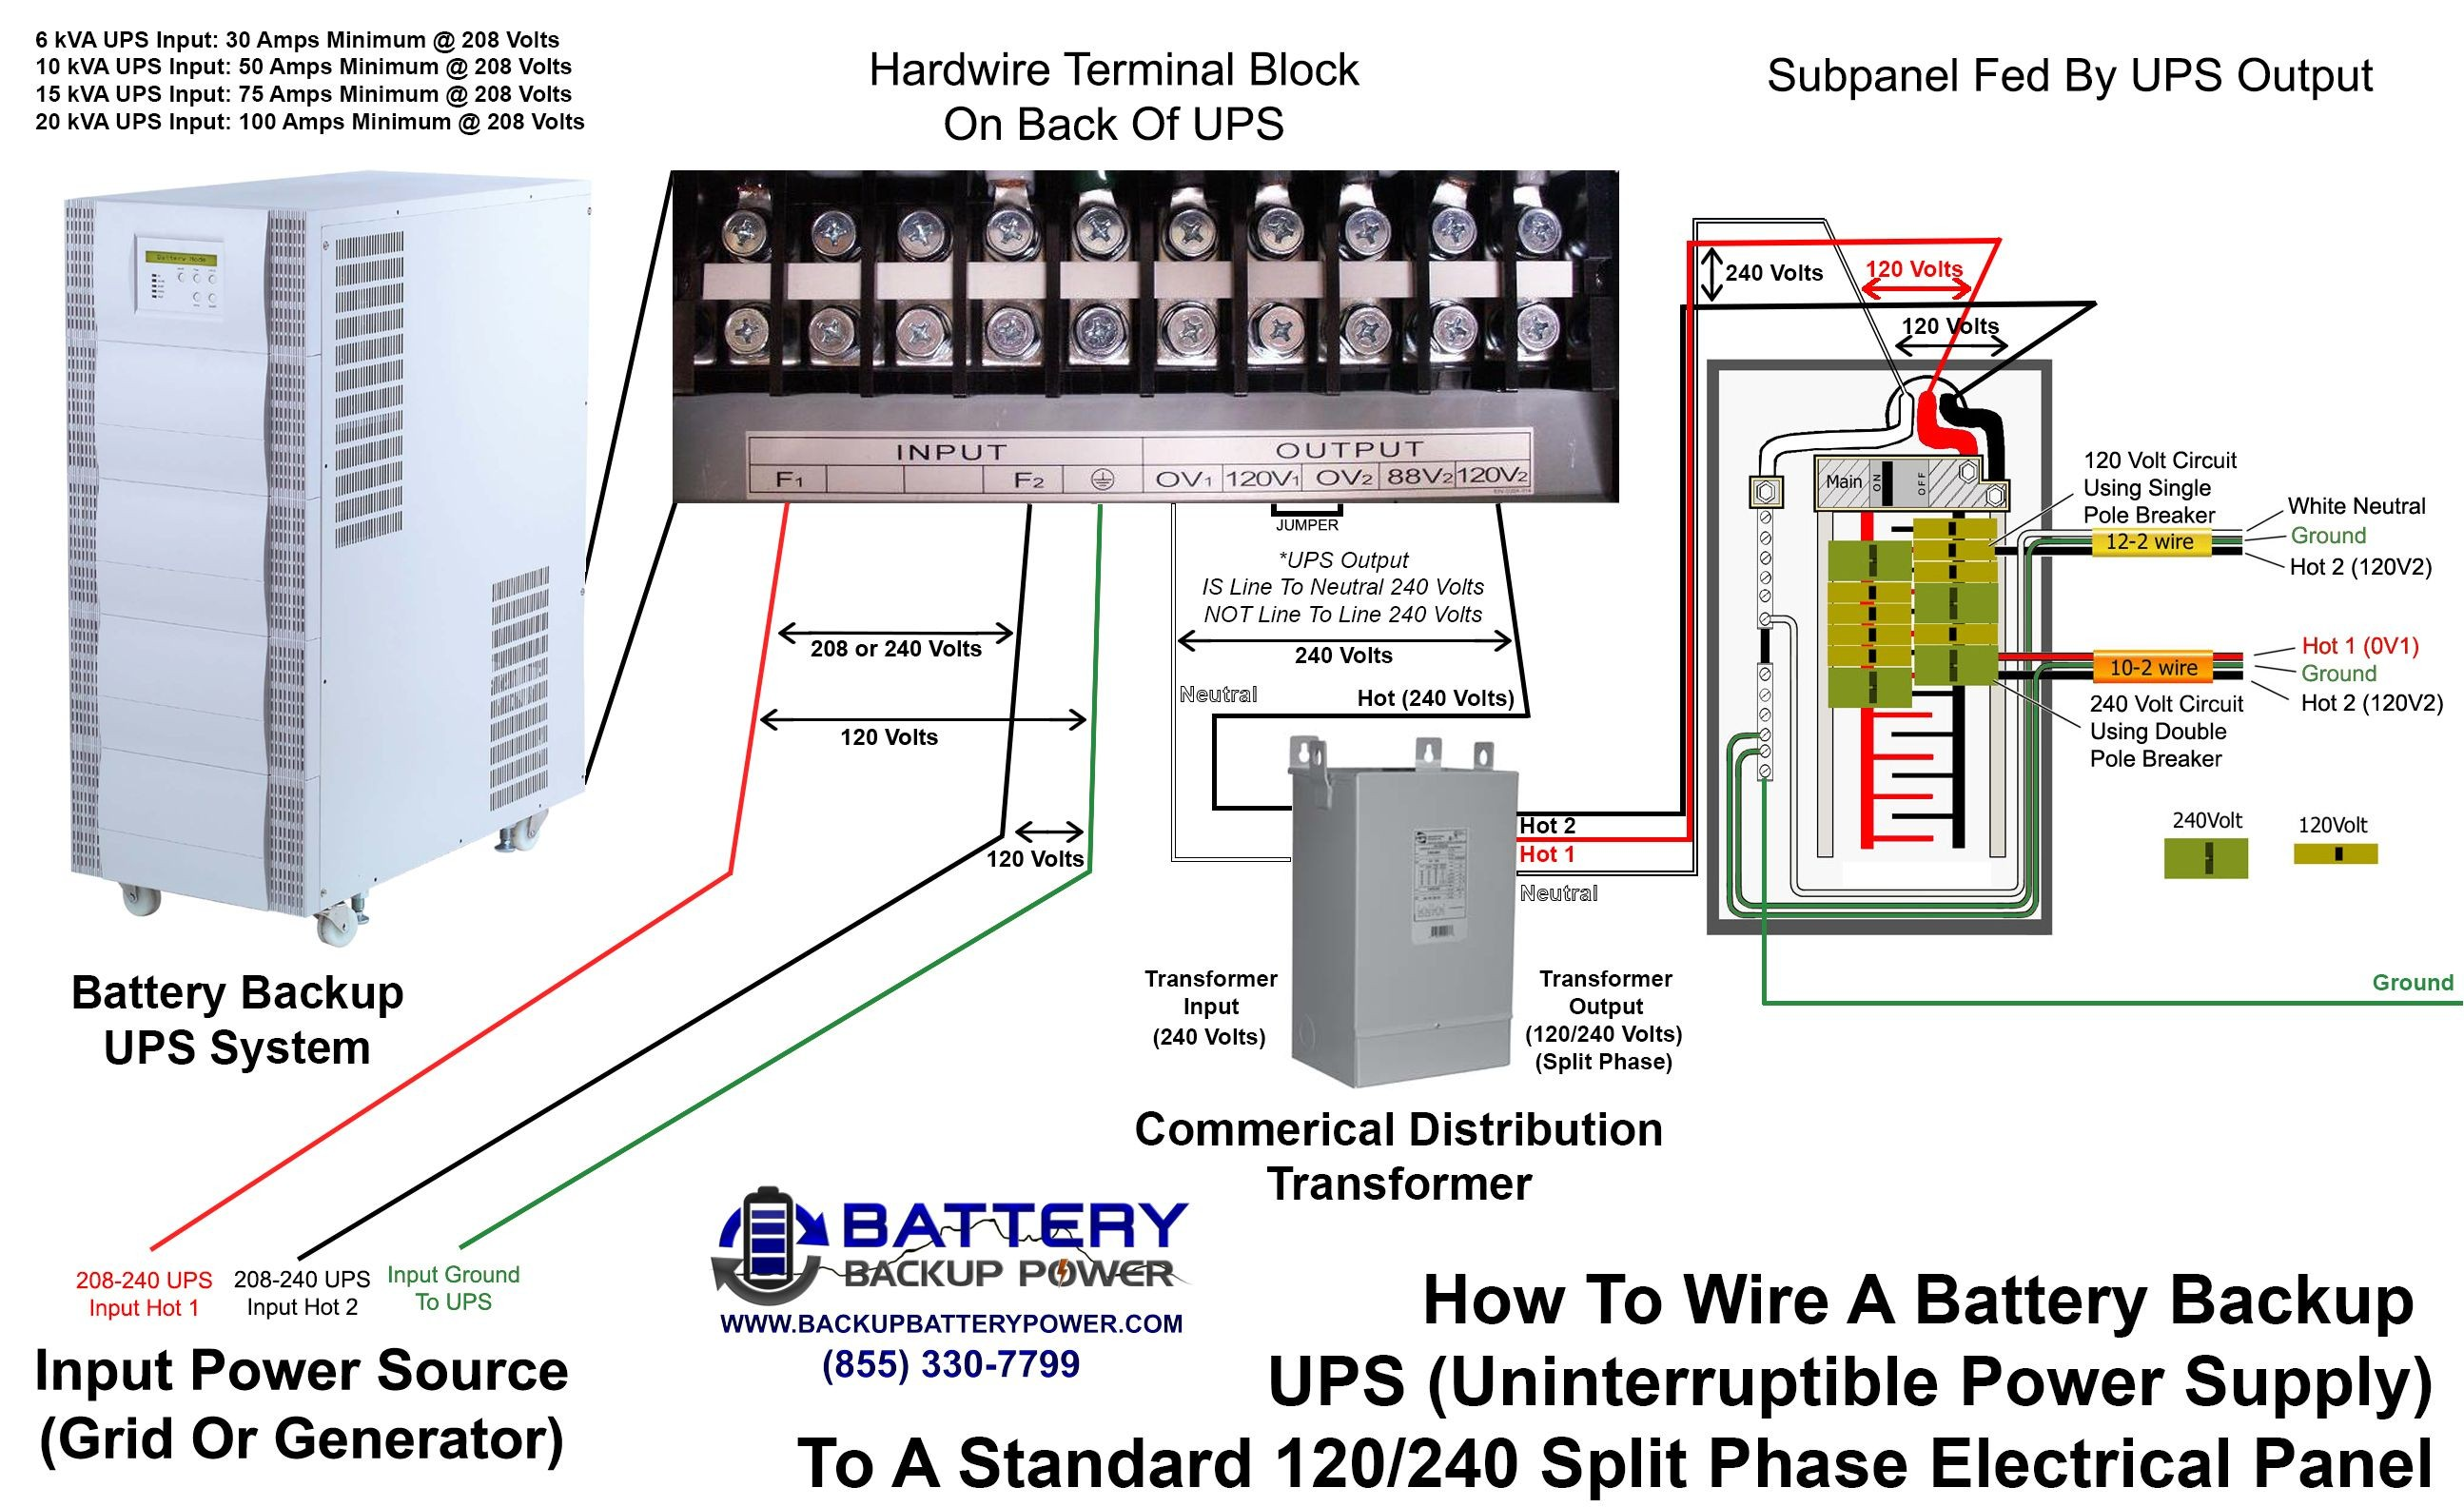 Transformer wiring diagram inspirational wiring diagram image how to wire a ups to a standard 120 240 split phase electrical panel diagram the asfbconference2016 Gallery